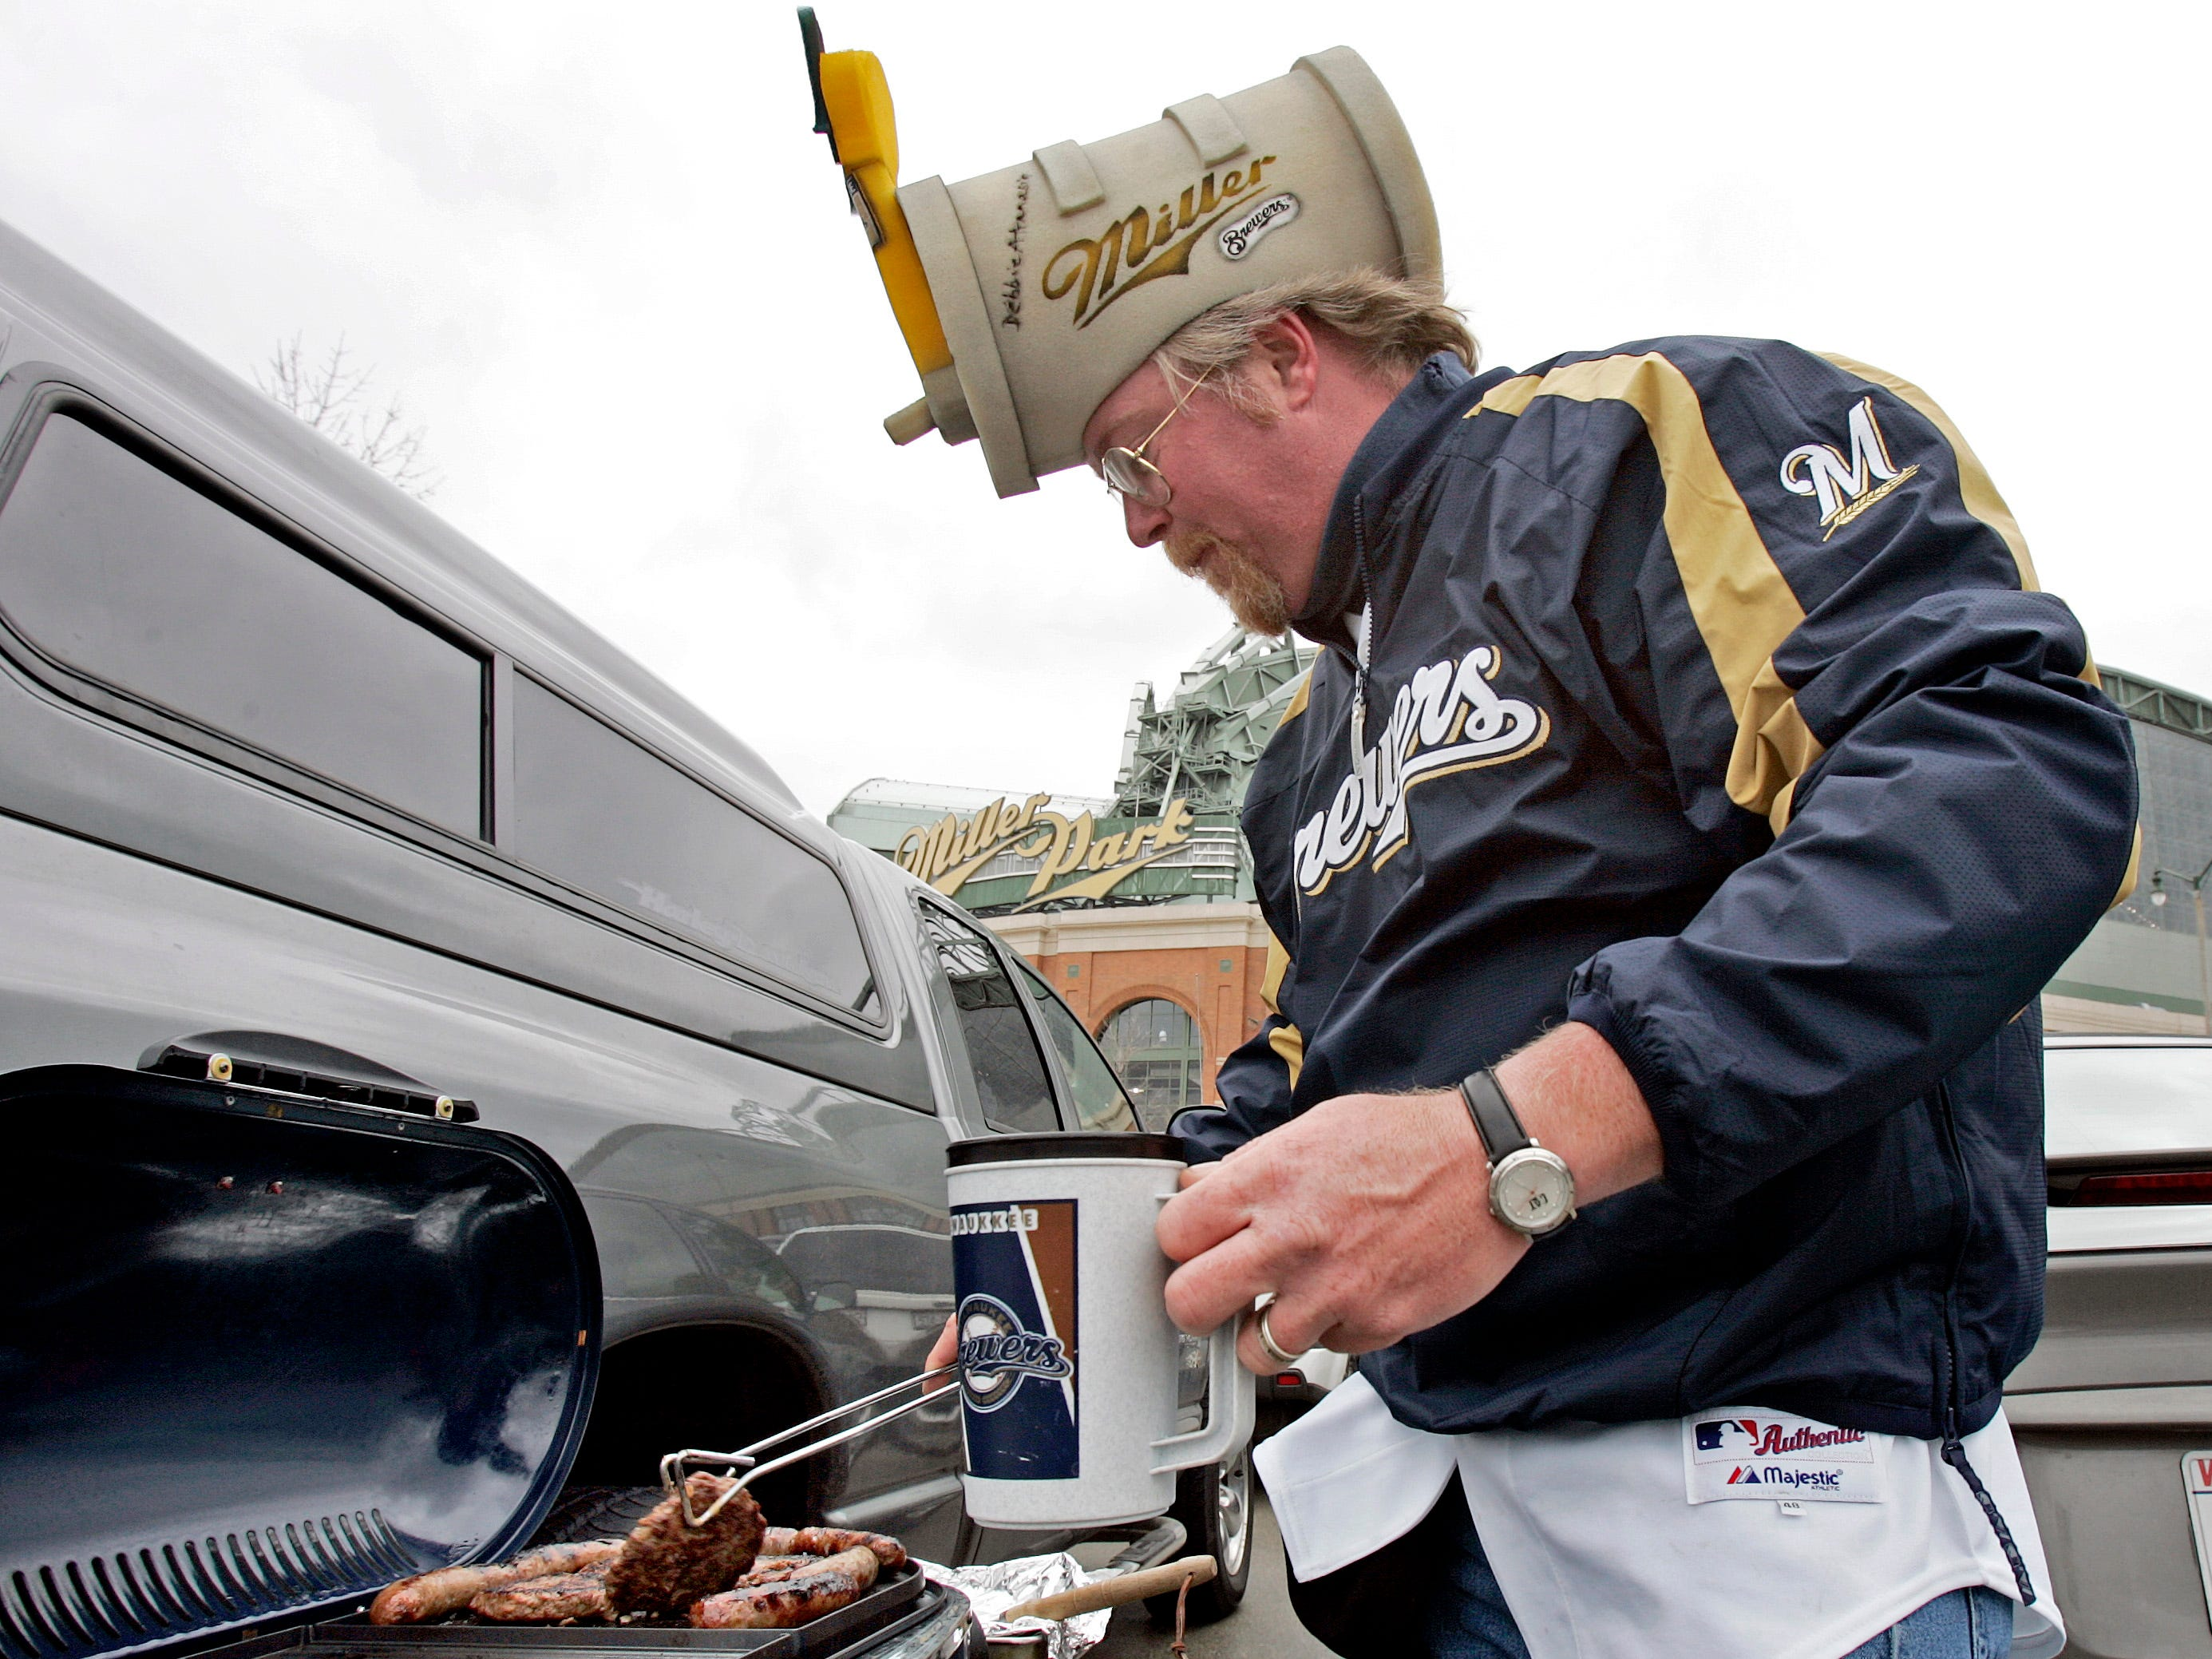 Paul Praeger of Menomonee Falls wears his foam Miller keg hat while he grills out before opening day at Miller Park Monday, April 3, 2006.